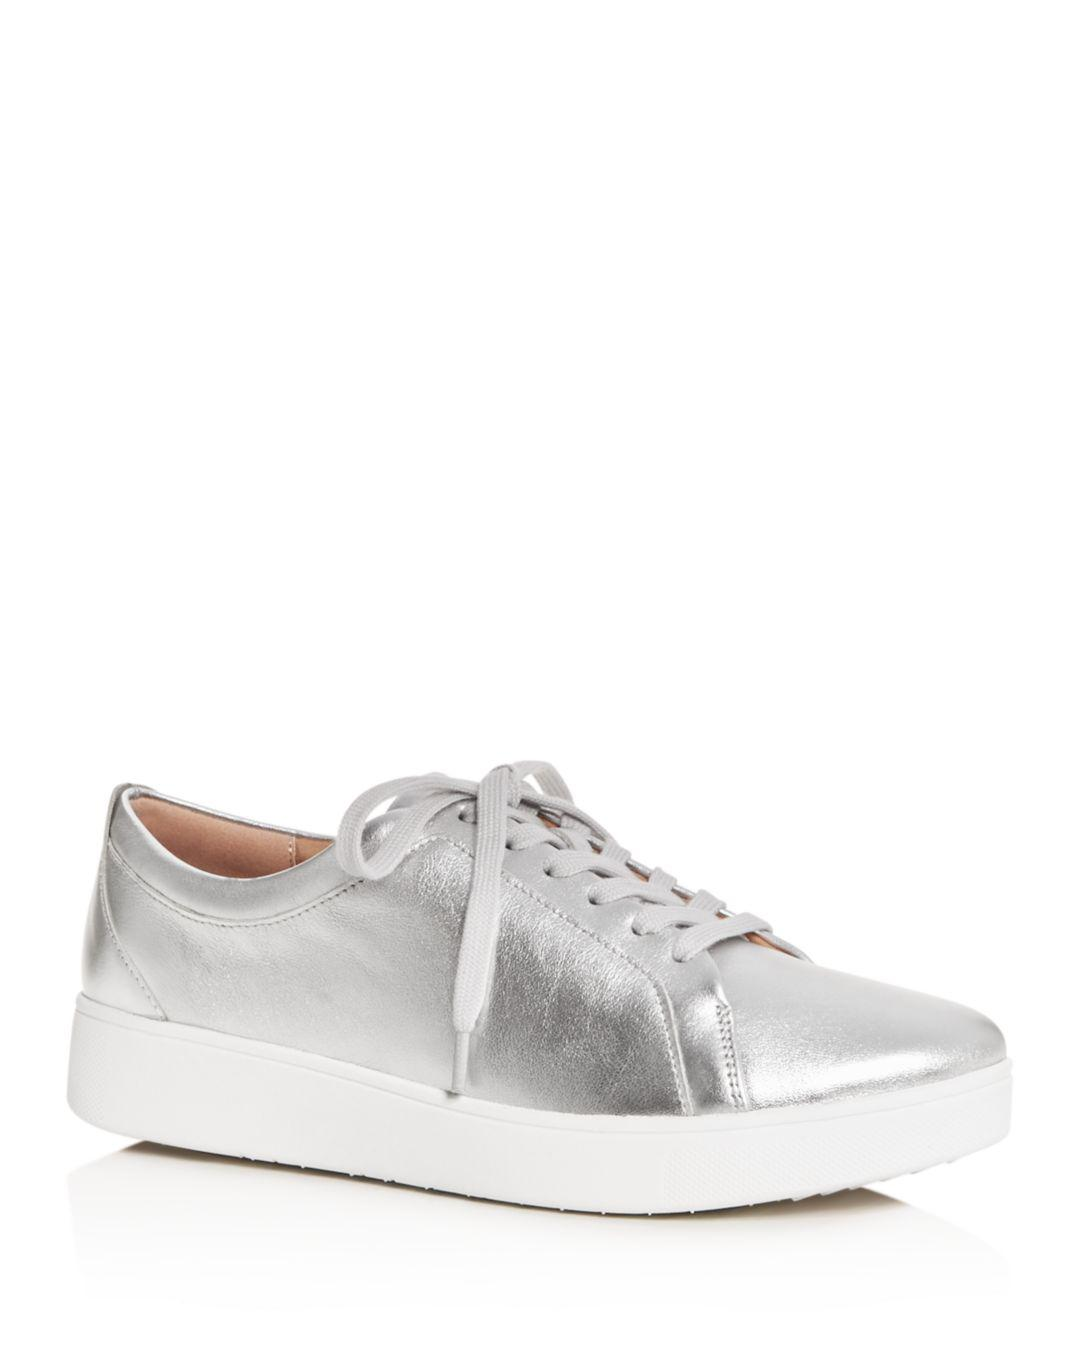 c124ee5d2adf Lyst - Fitflop Women s Rally Low-top Platform Sneakers in Metallic